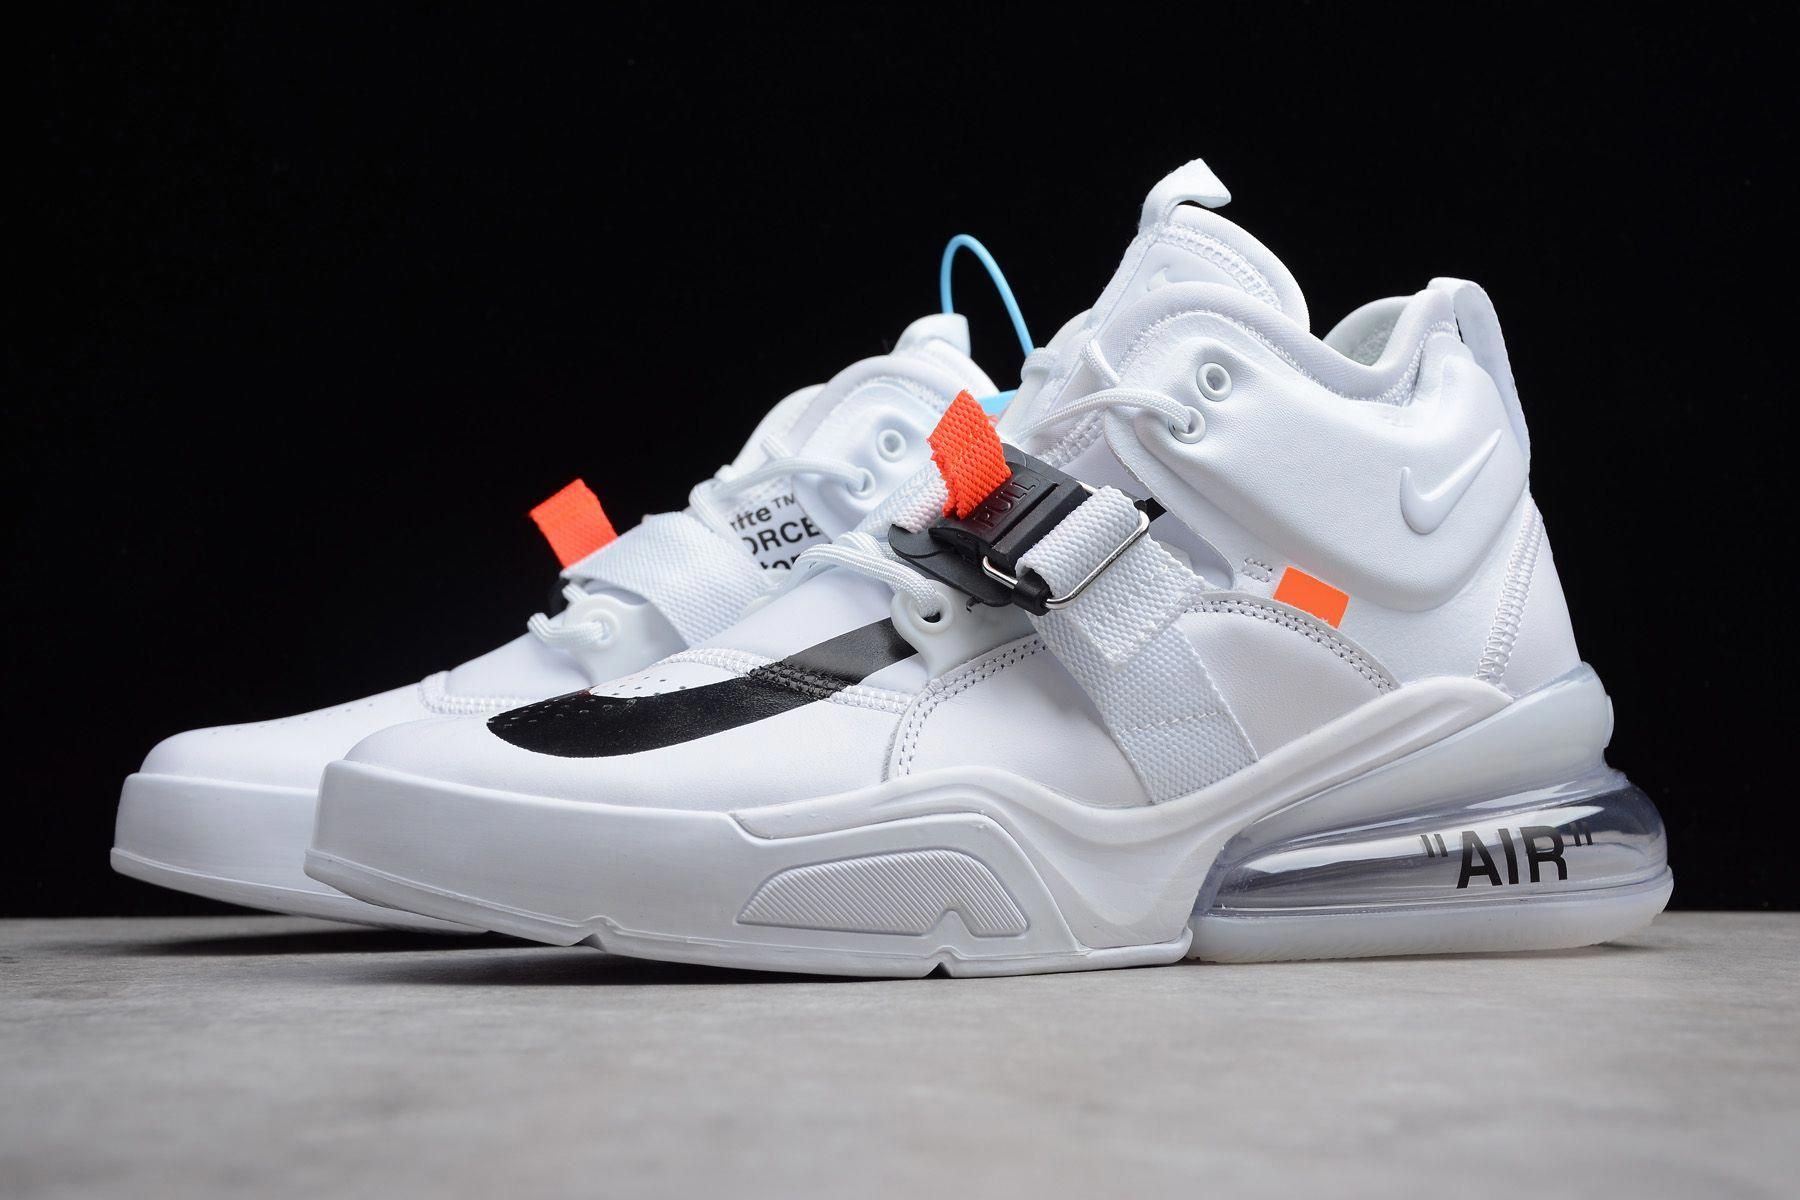 Nike Air Force 270 Men's Running Shoes White #AH6772 010